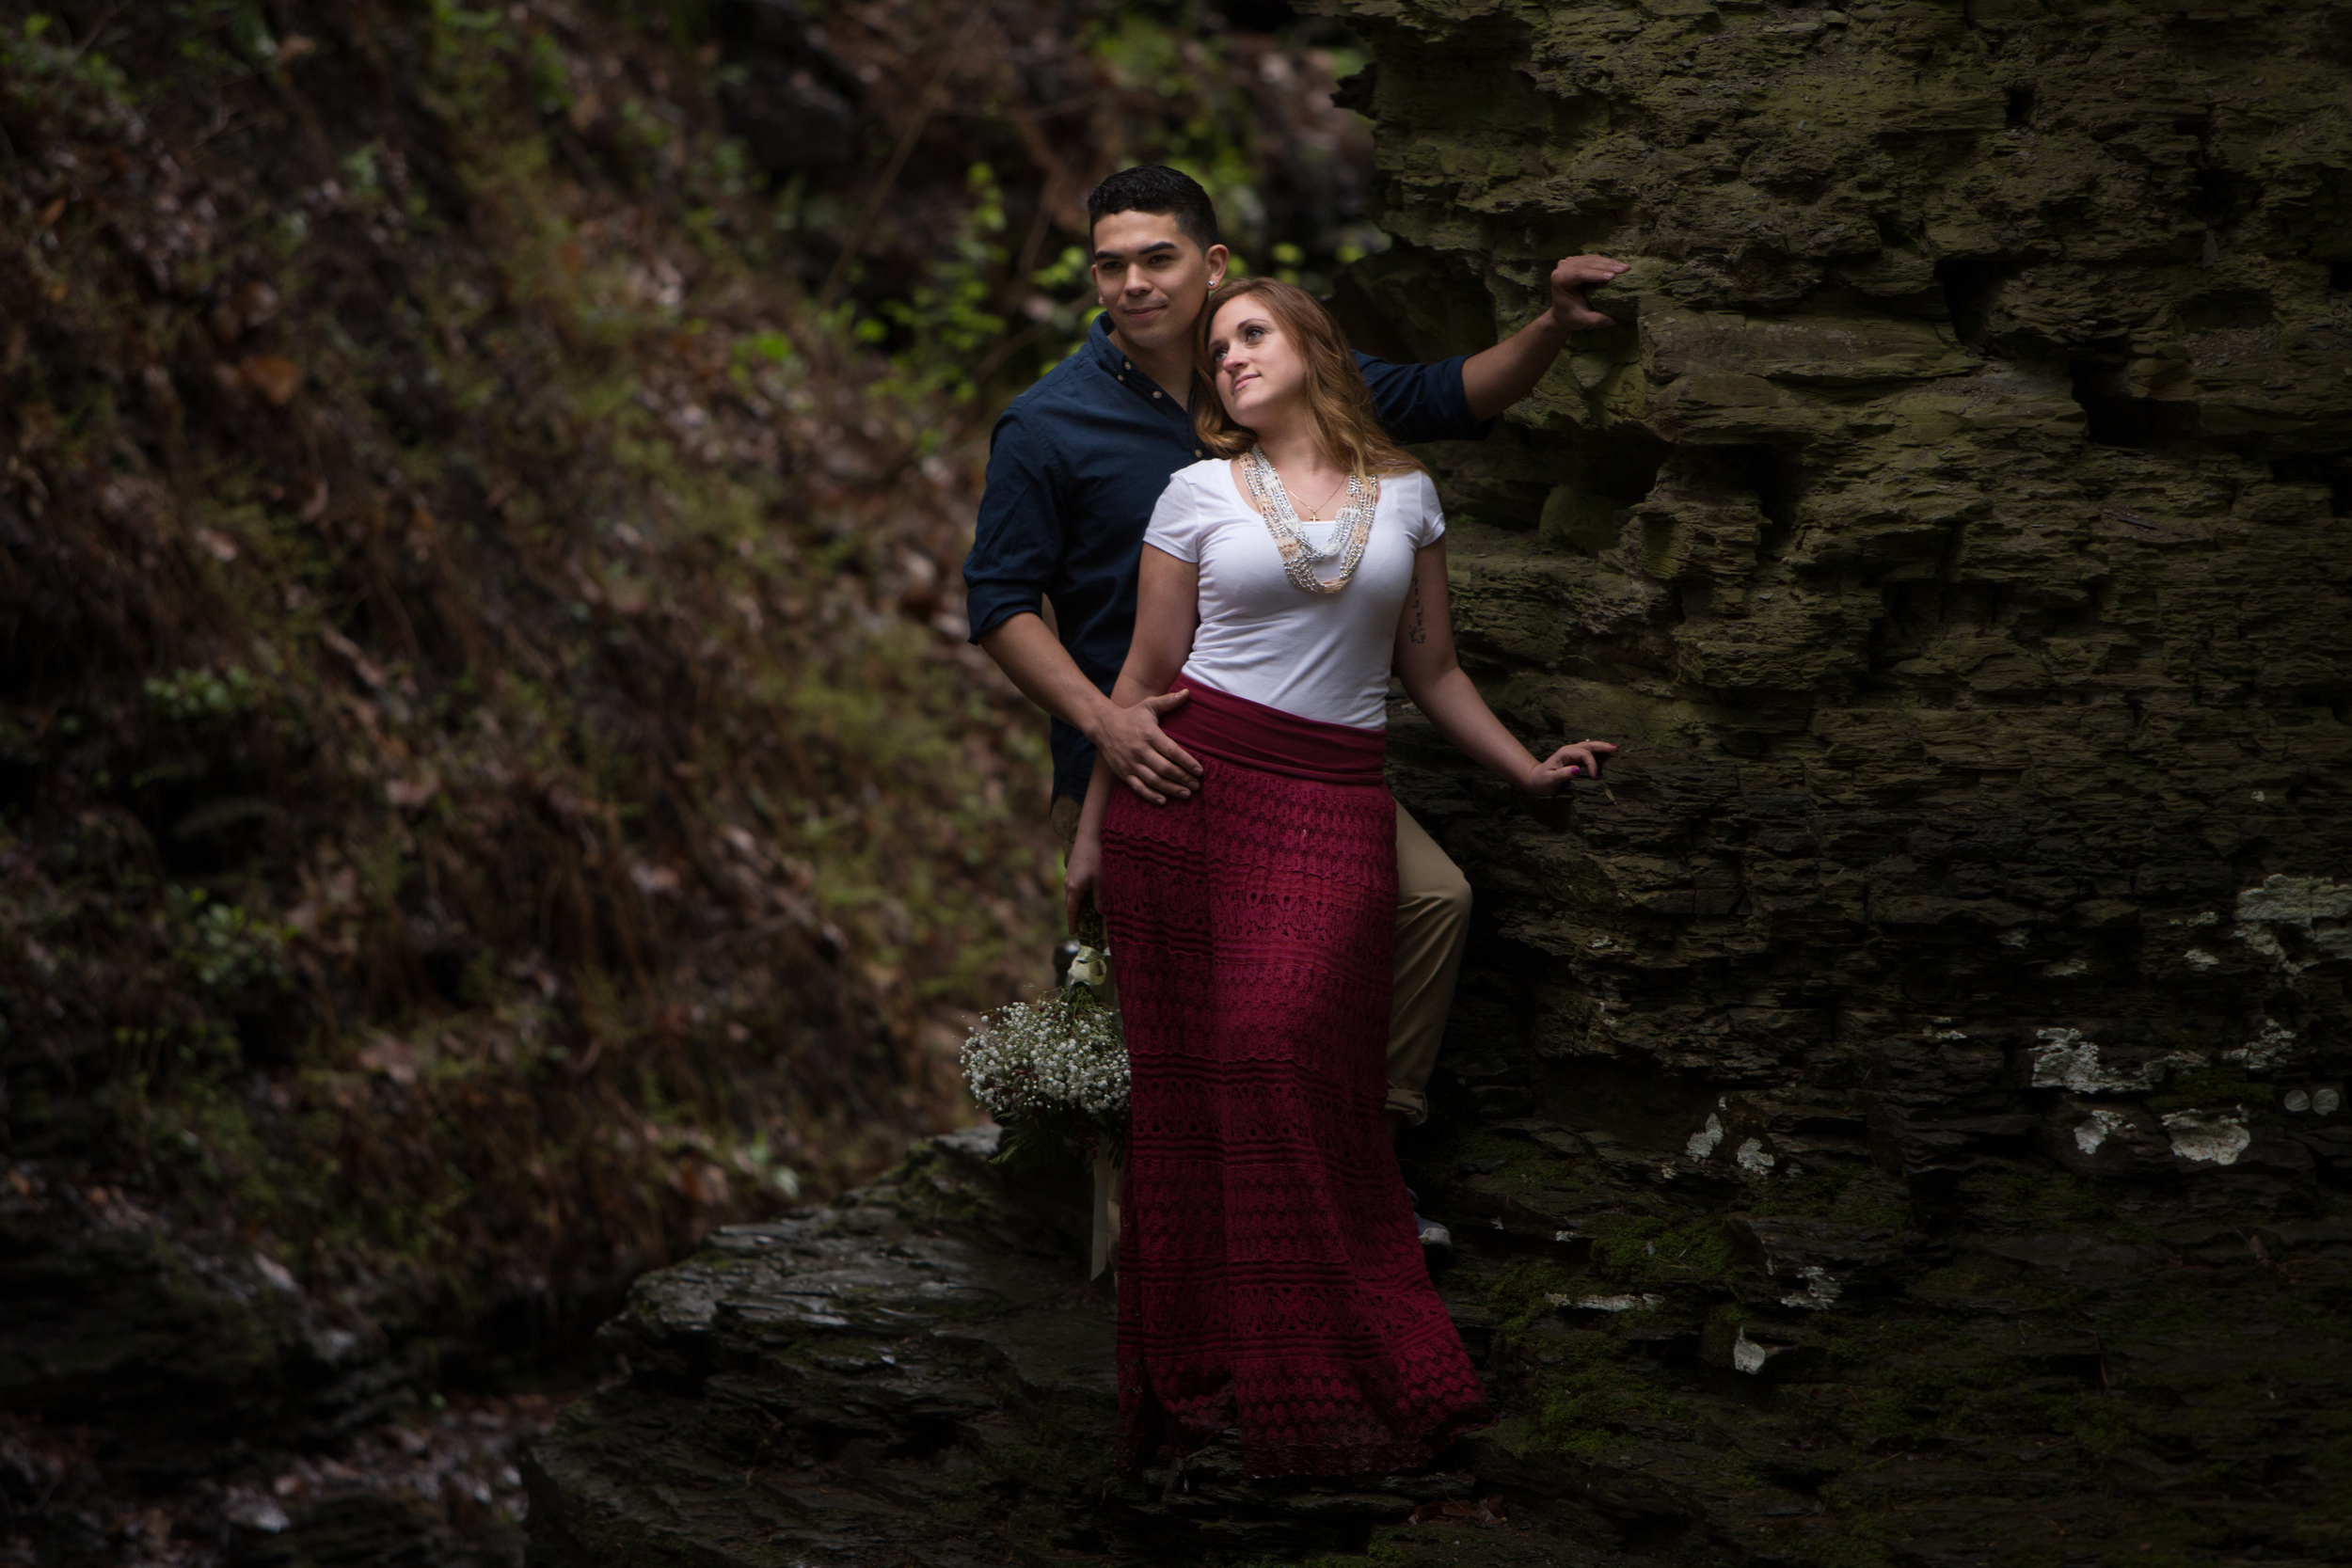 A_J_Engagement_Session_Waterfall_Nick_Natasha_Photography-47.jpg